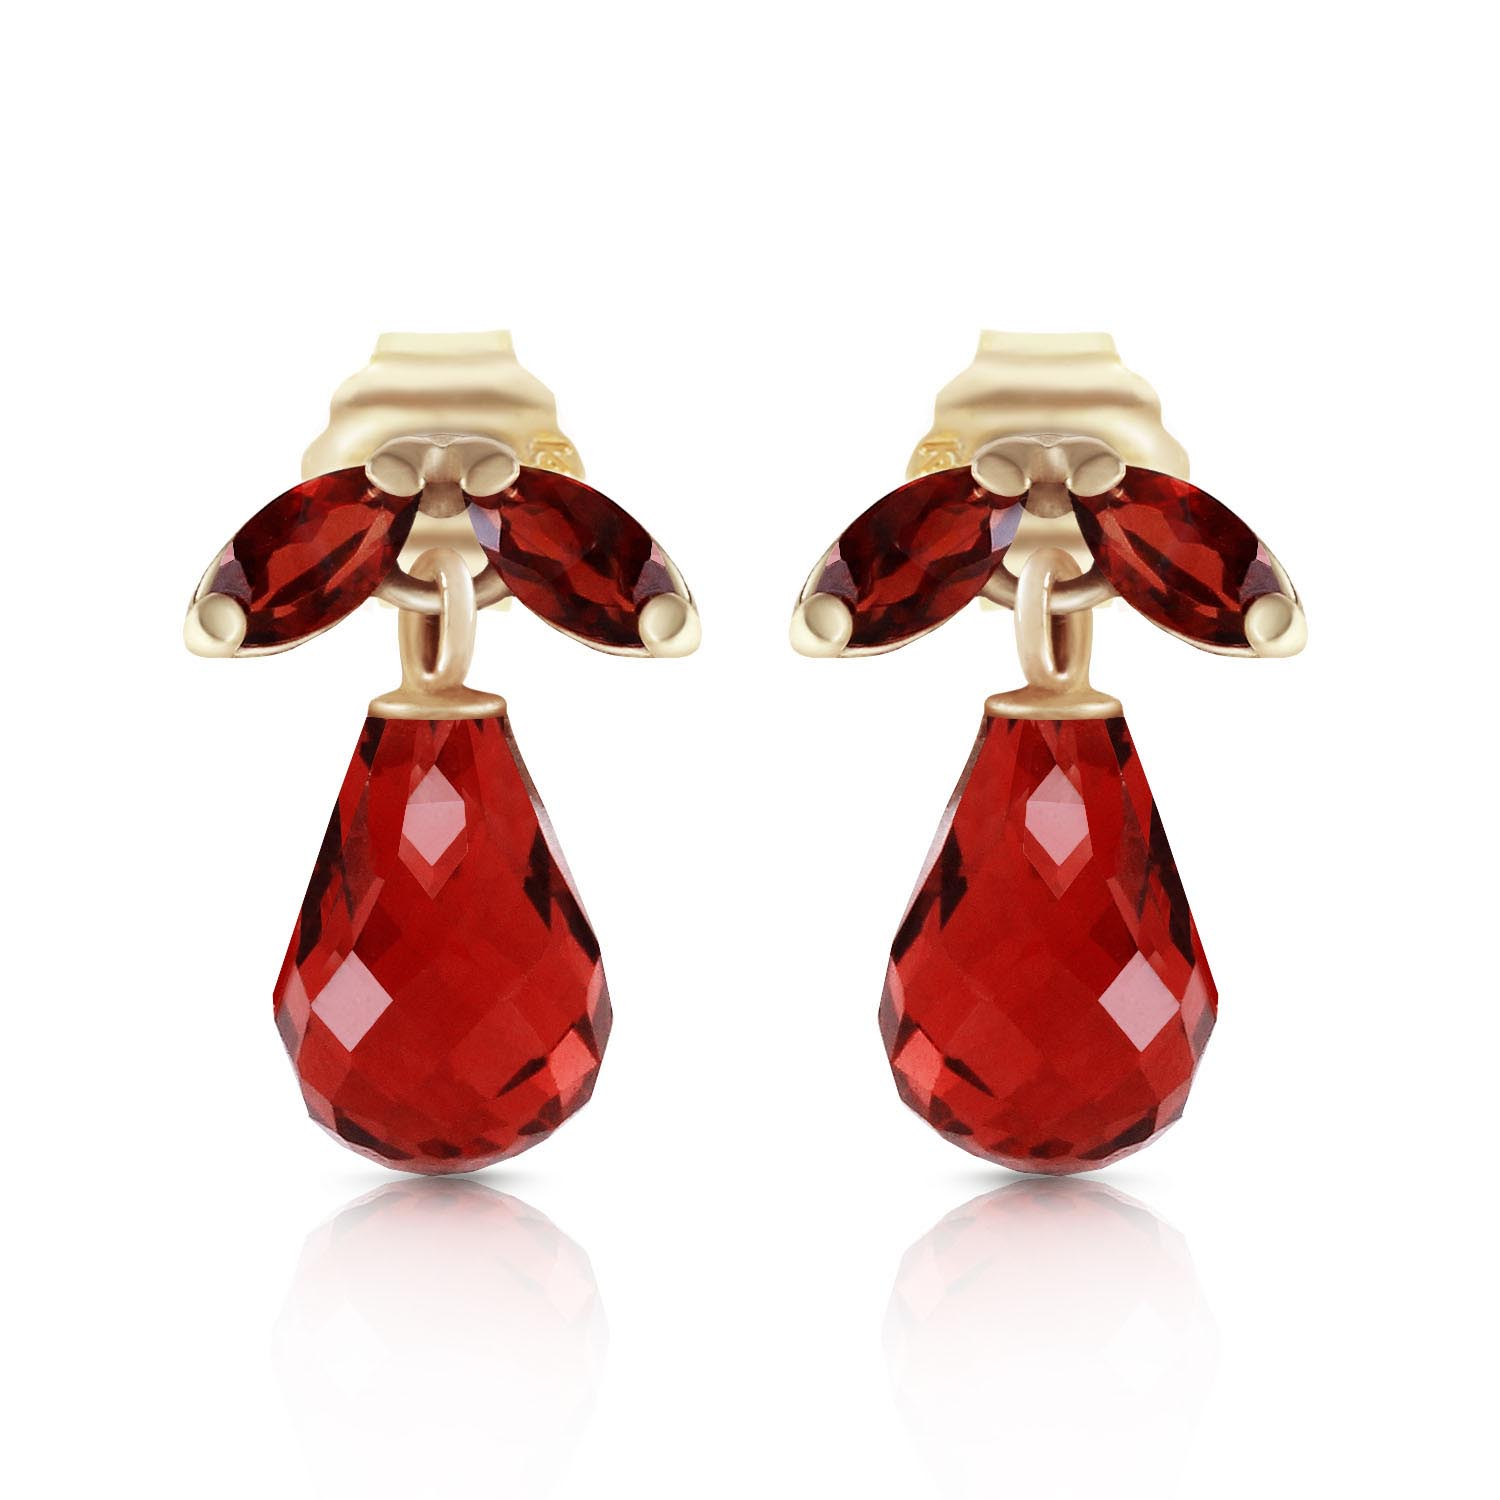 Garnet Snowdrop Briolette Stud Earrings 3.4ctw in 9ct Gold